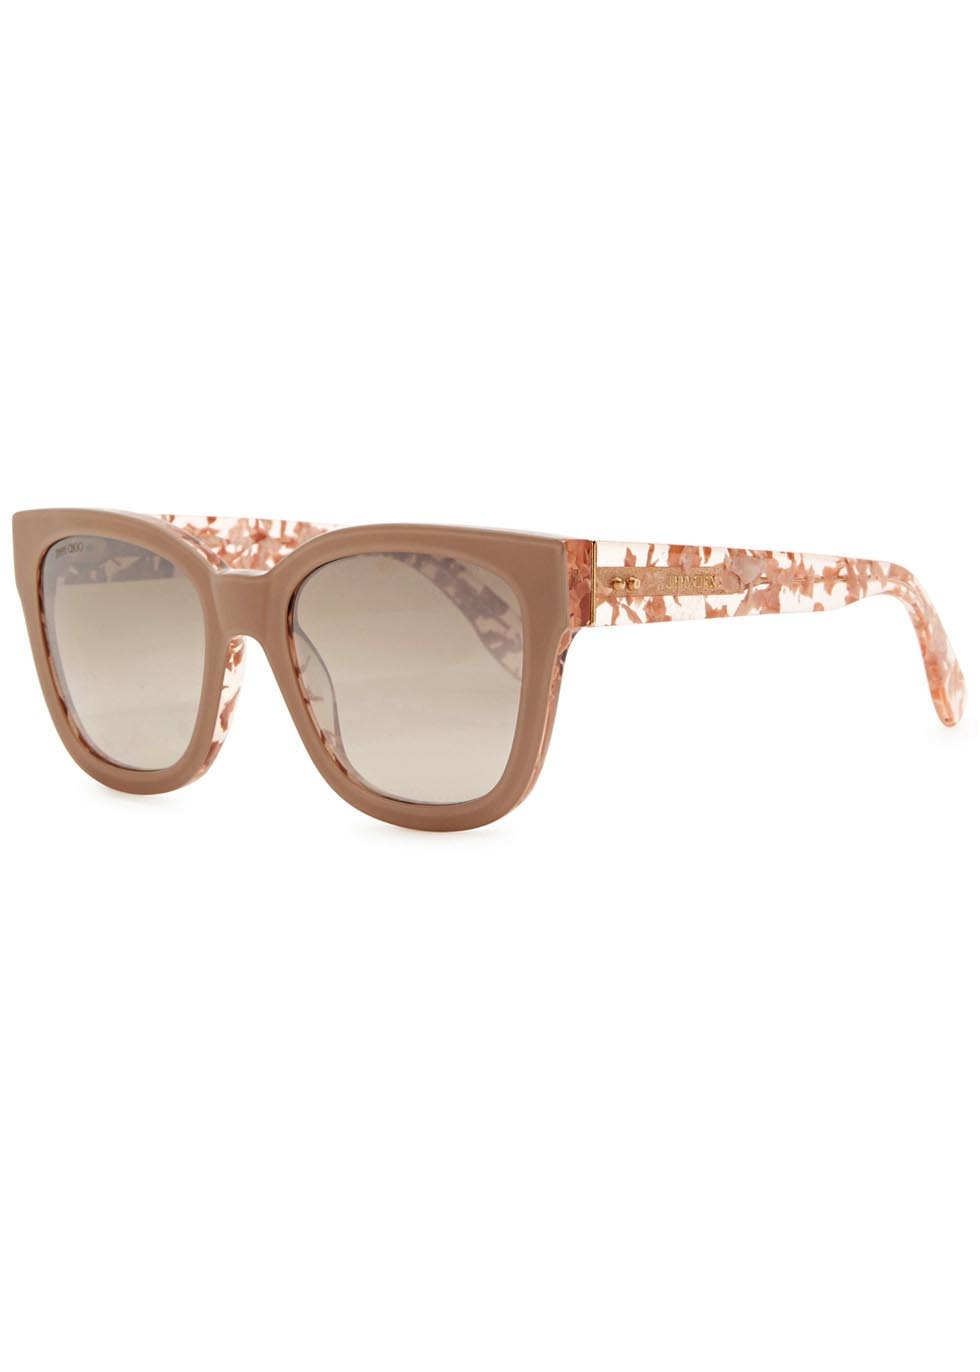 Otti Rose Wayfarer Style Sunglasses - predominant colour: nude; occasions: casual, holiday; style: d frame; size: large; material: plastic/rubber; pattern: plain; finish: plain; season: a/w 2015; wardrobe: basic